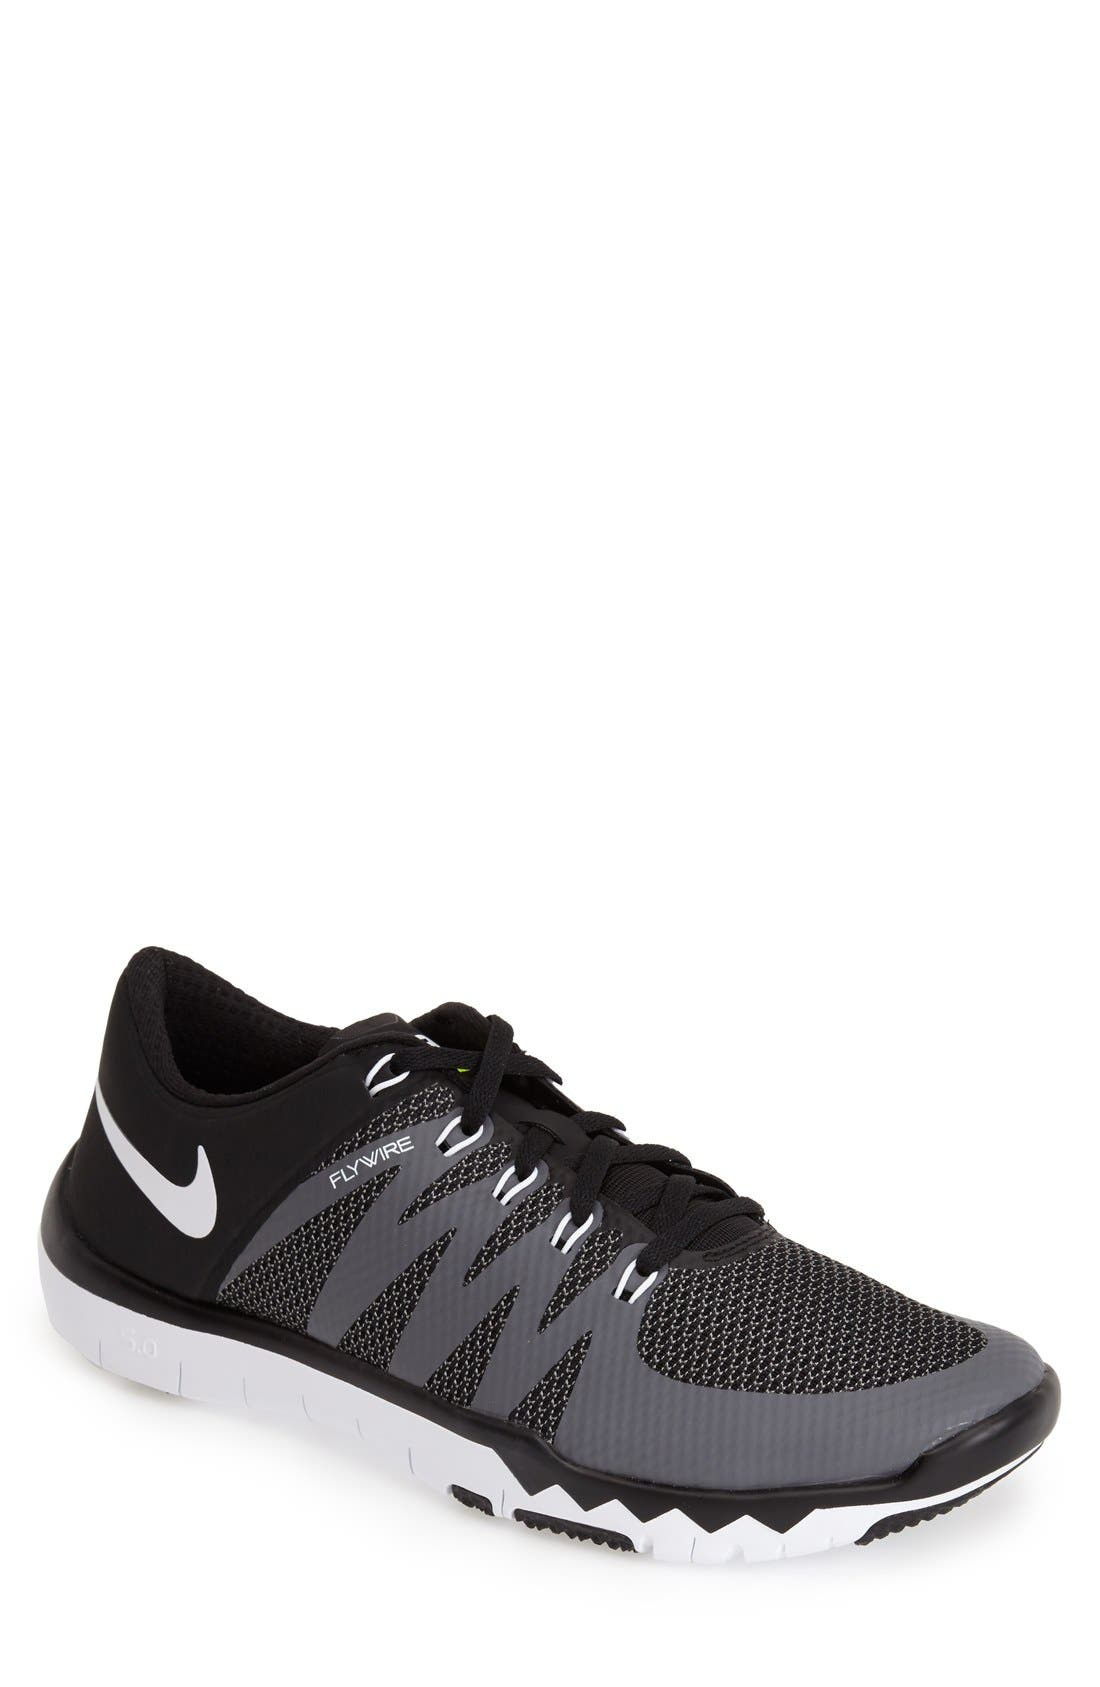 47f7237677a4 ... grey mens cross training shoes 719922 010 dddfc a7bfd  promo code for free  trainer 5.0 v6 training shoe 42658 908b1